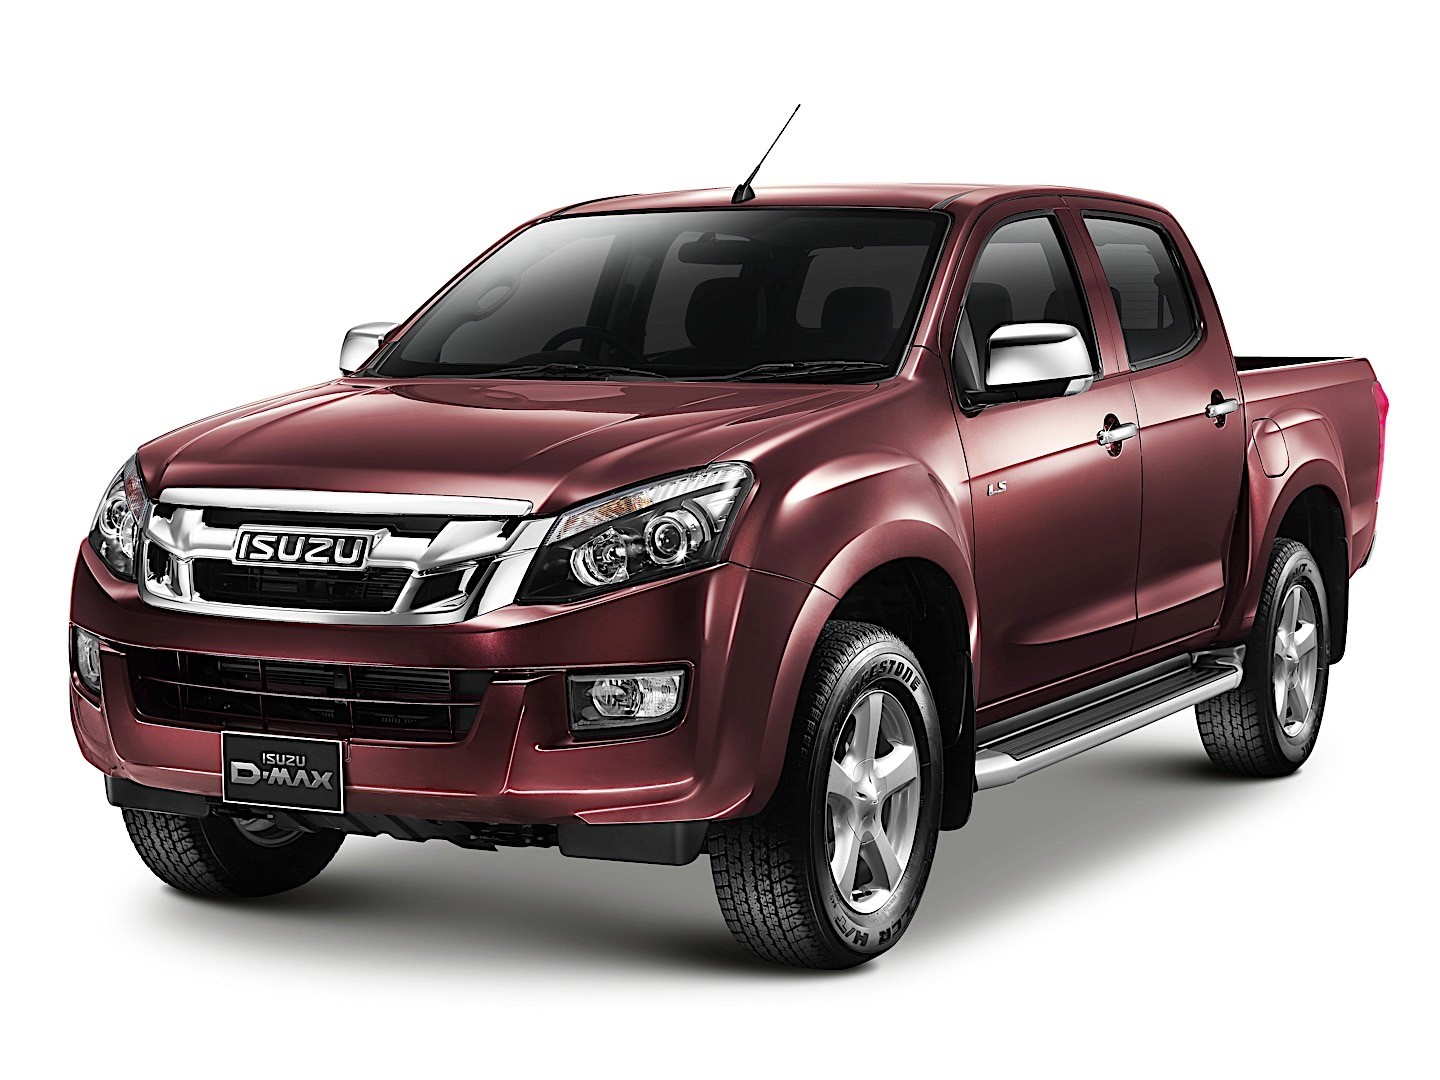 ISUZU D-MAX: Story of a Reliable pick-up with truck DNA – Dana Auto